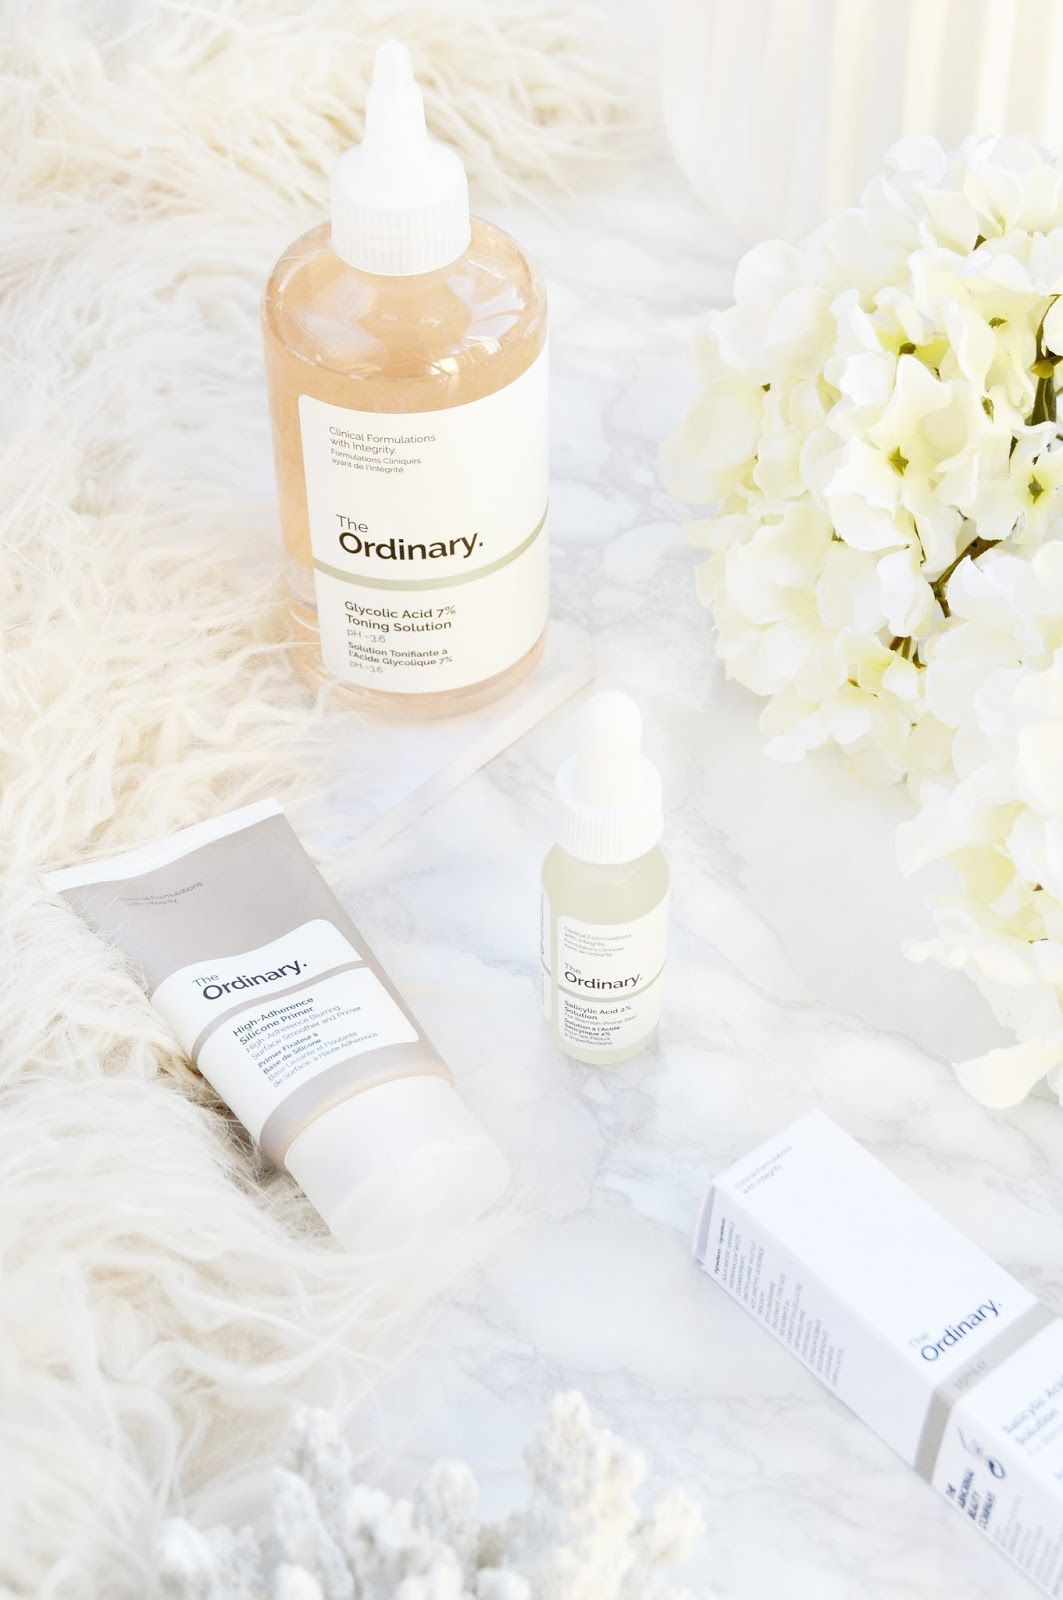 3 MustTry Products from The Ordinary The ordinary